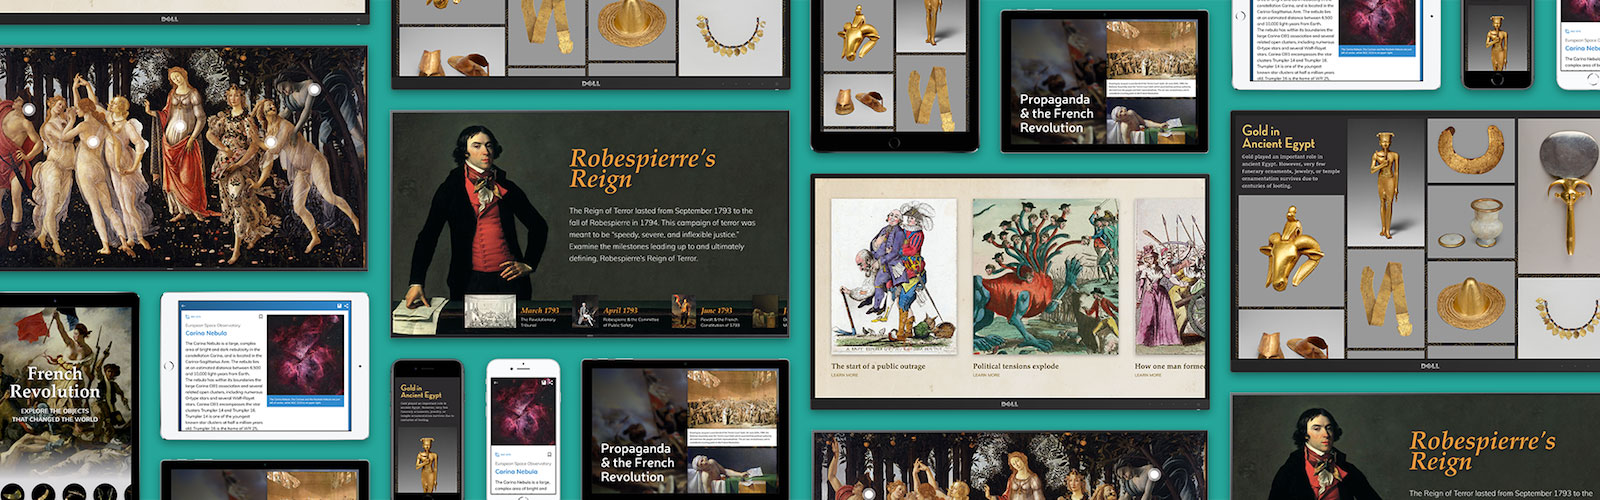 Responsive design for museum apps